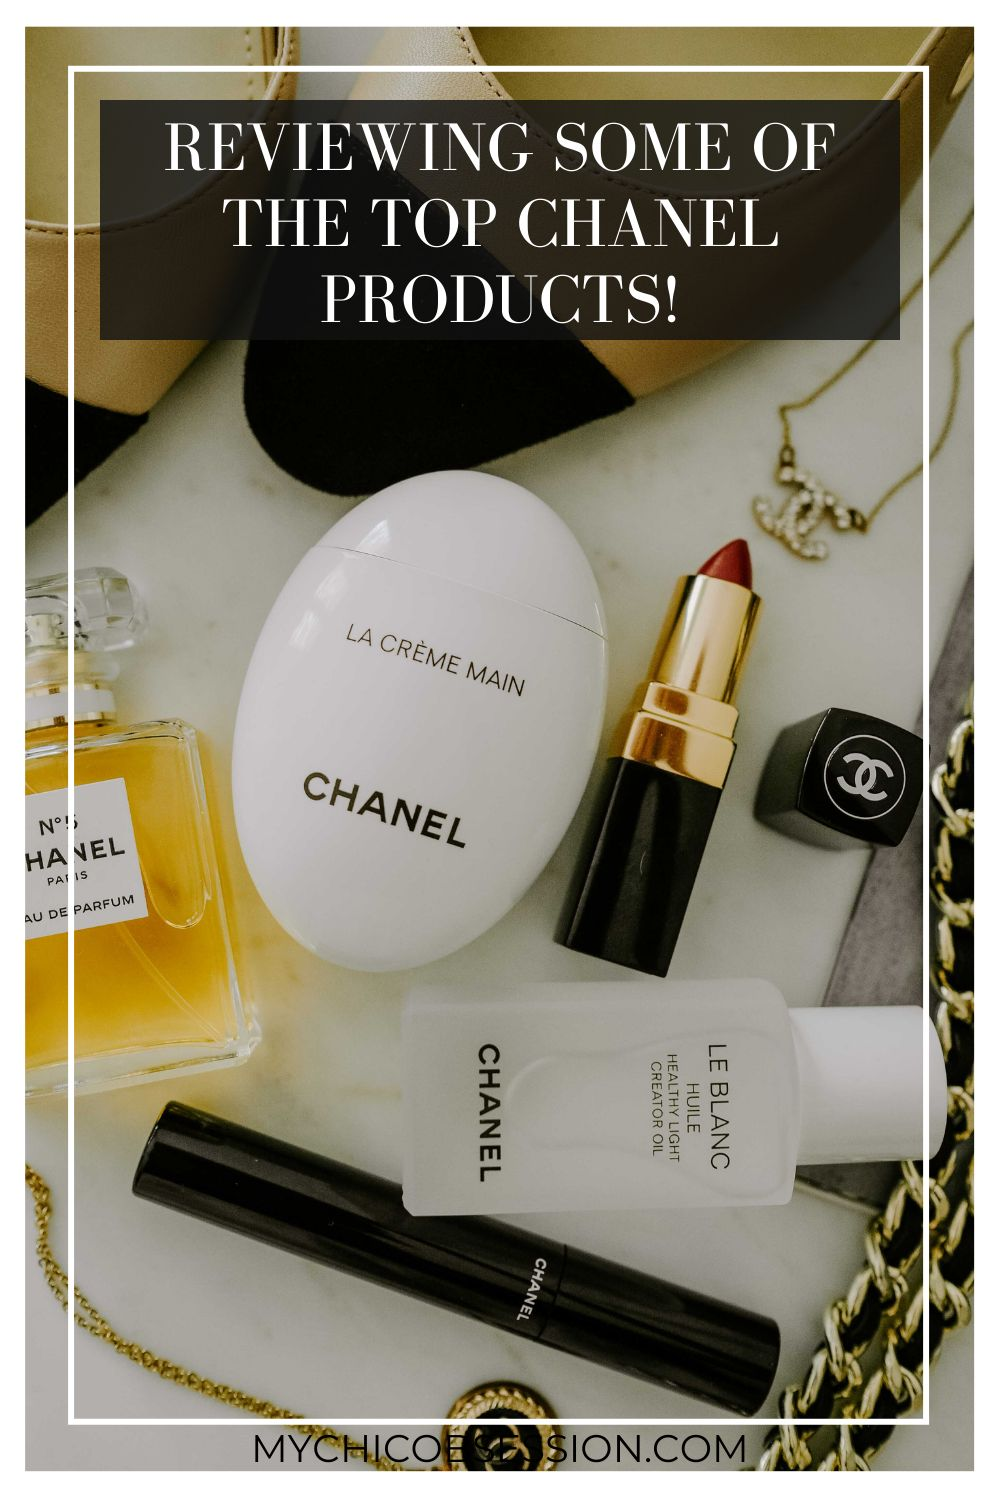 chanel products review